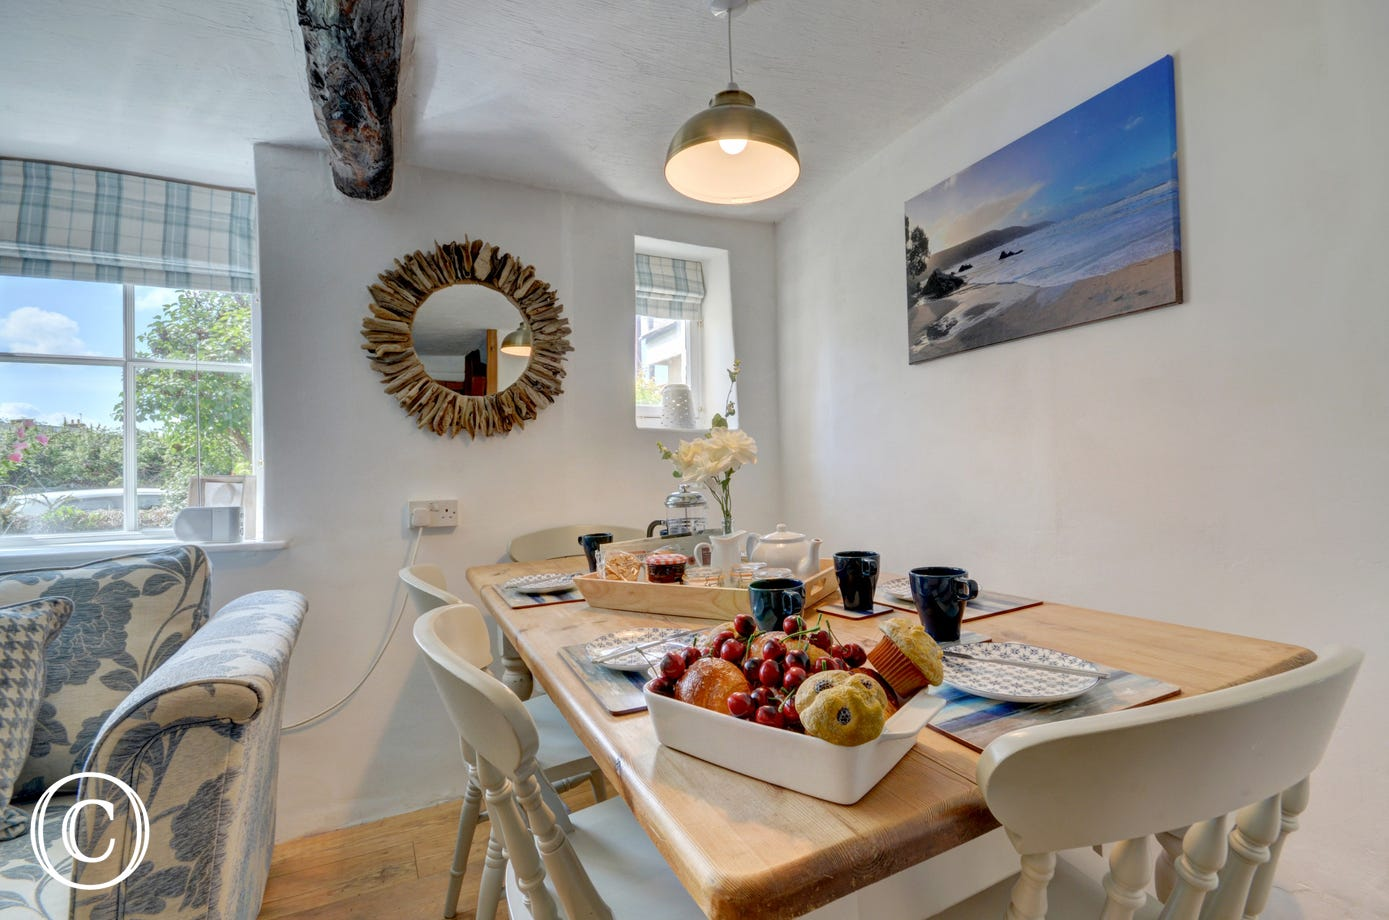 Enjoy meals together around the dining table which comfortably seats five people